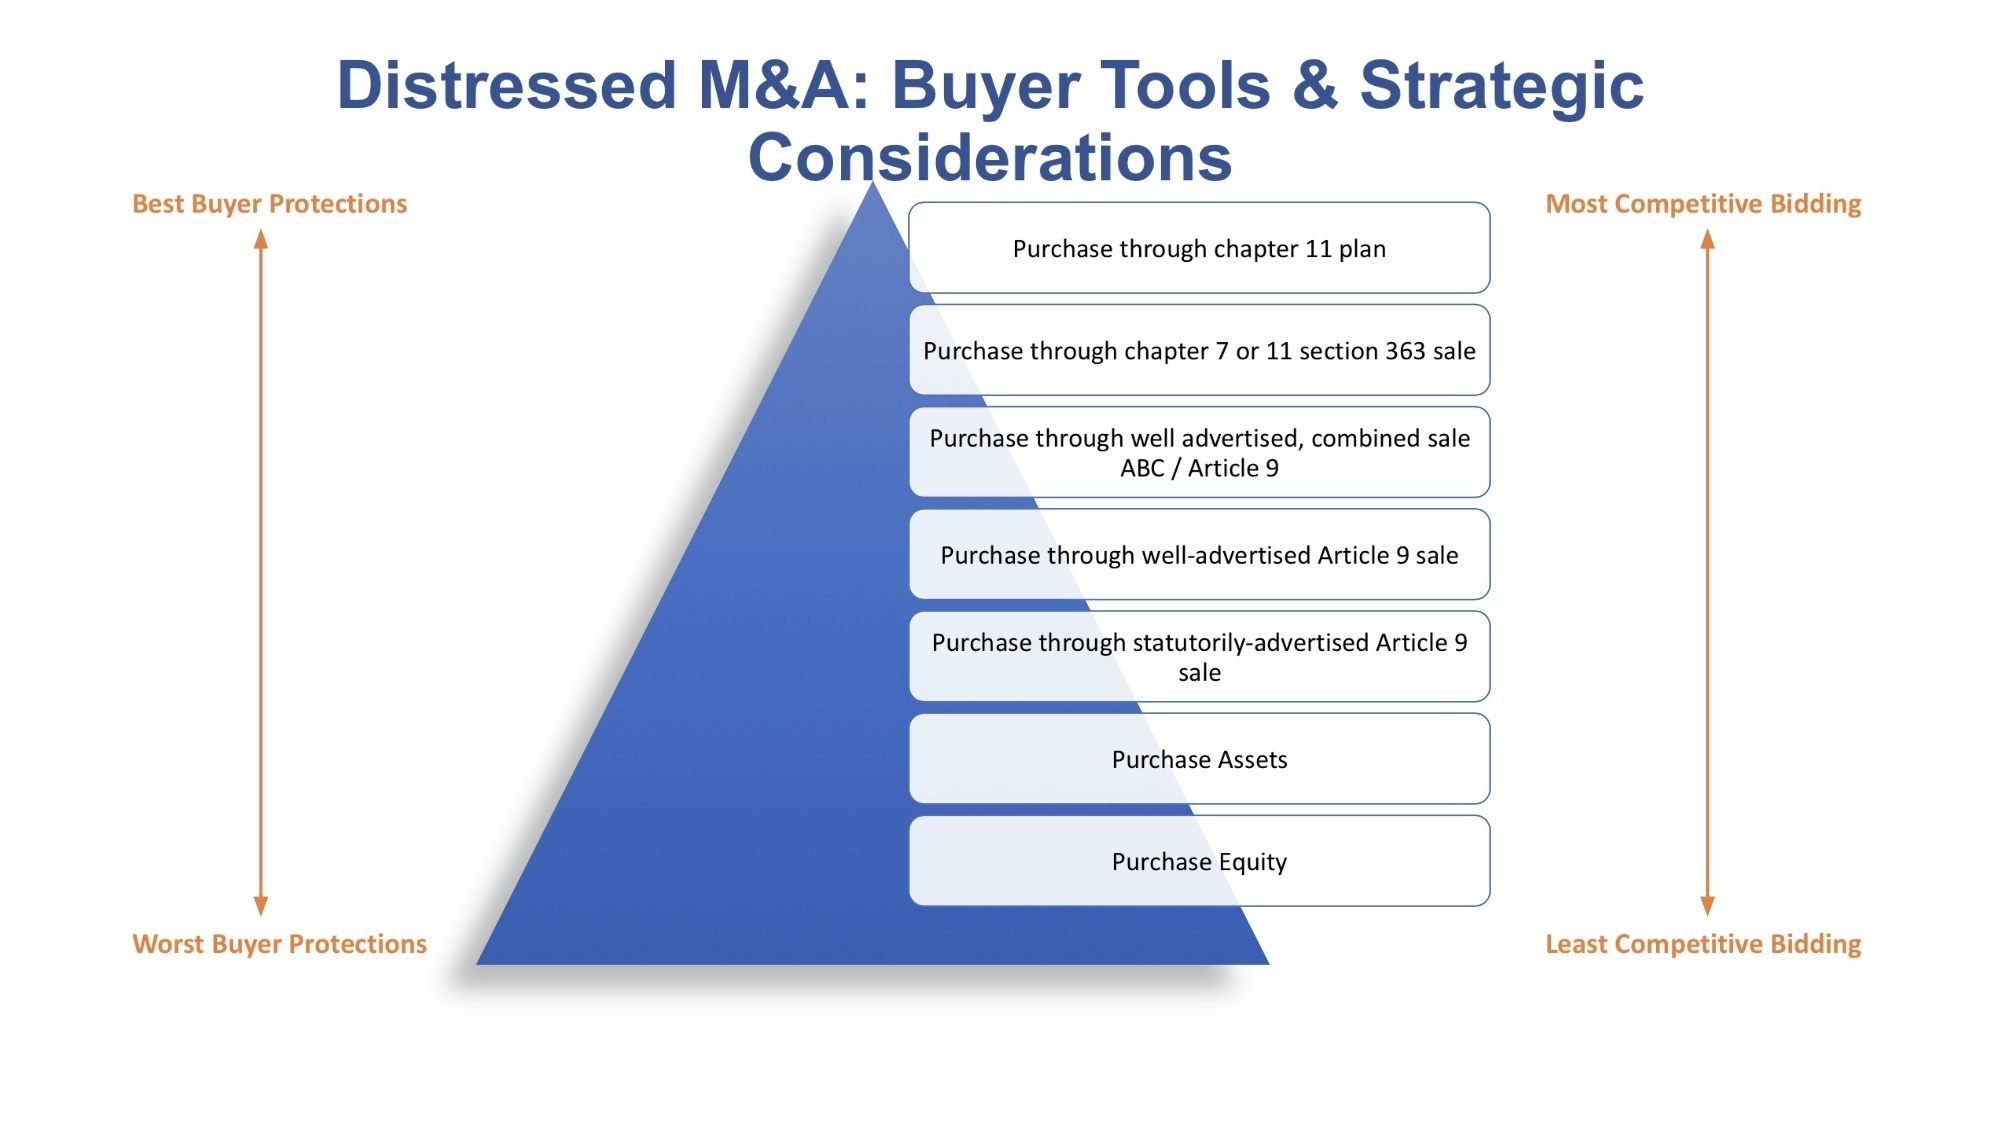 Distressed M&A Buyer Tools